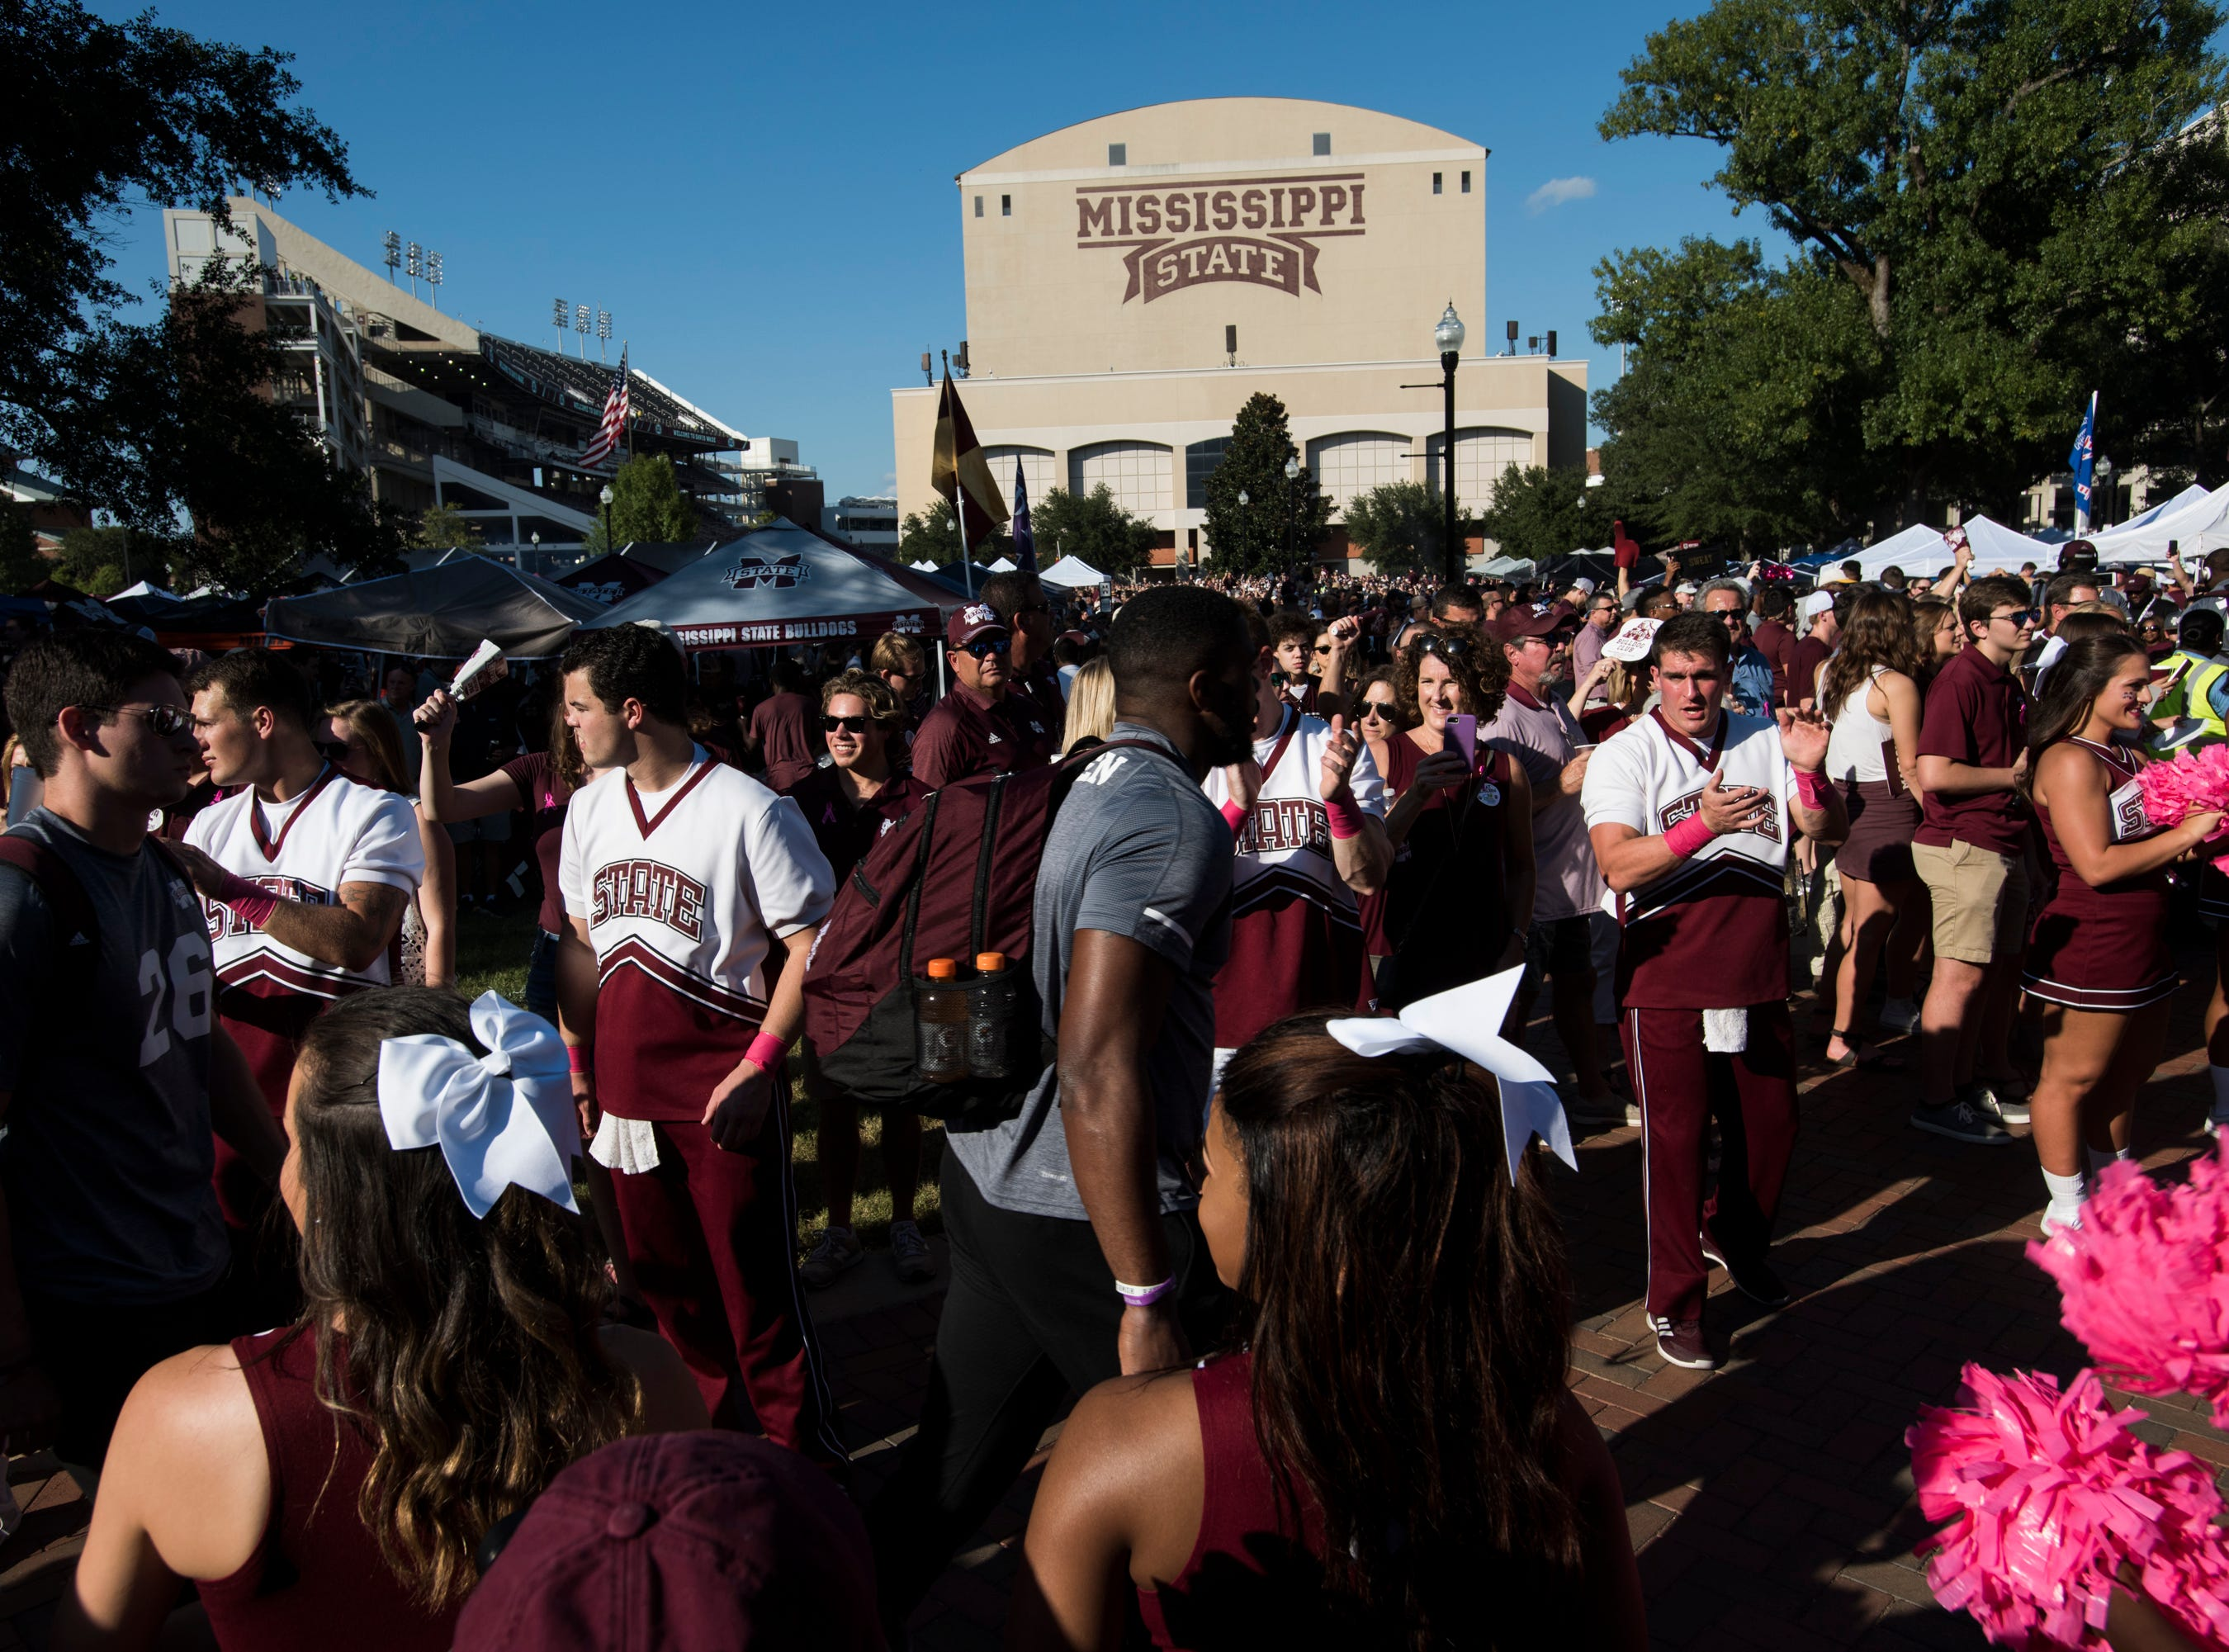 Mississippi State players high five fans during the Dawg Walk outside Davis Wade Stadium in Starkville, Miss., on Saturday, Oct. 6, 2018.